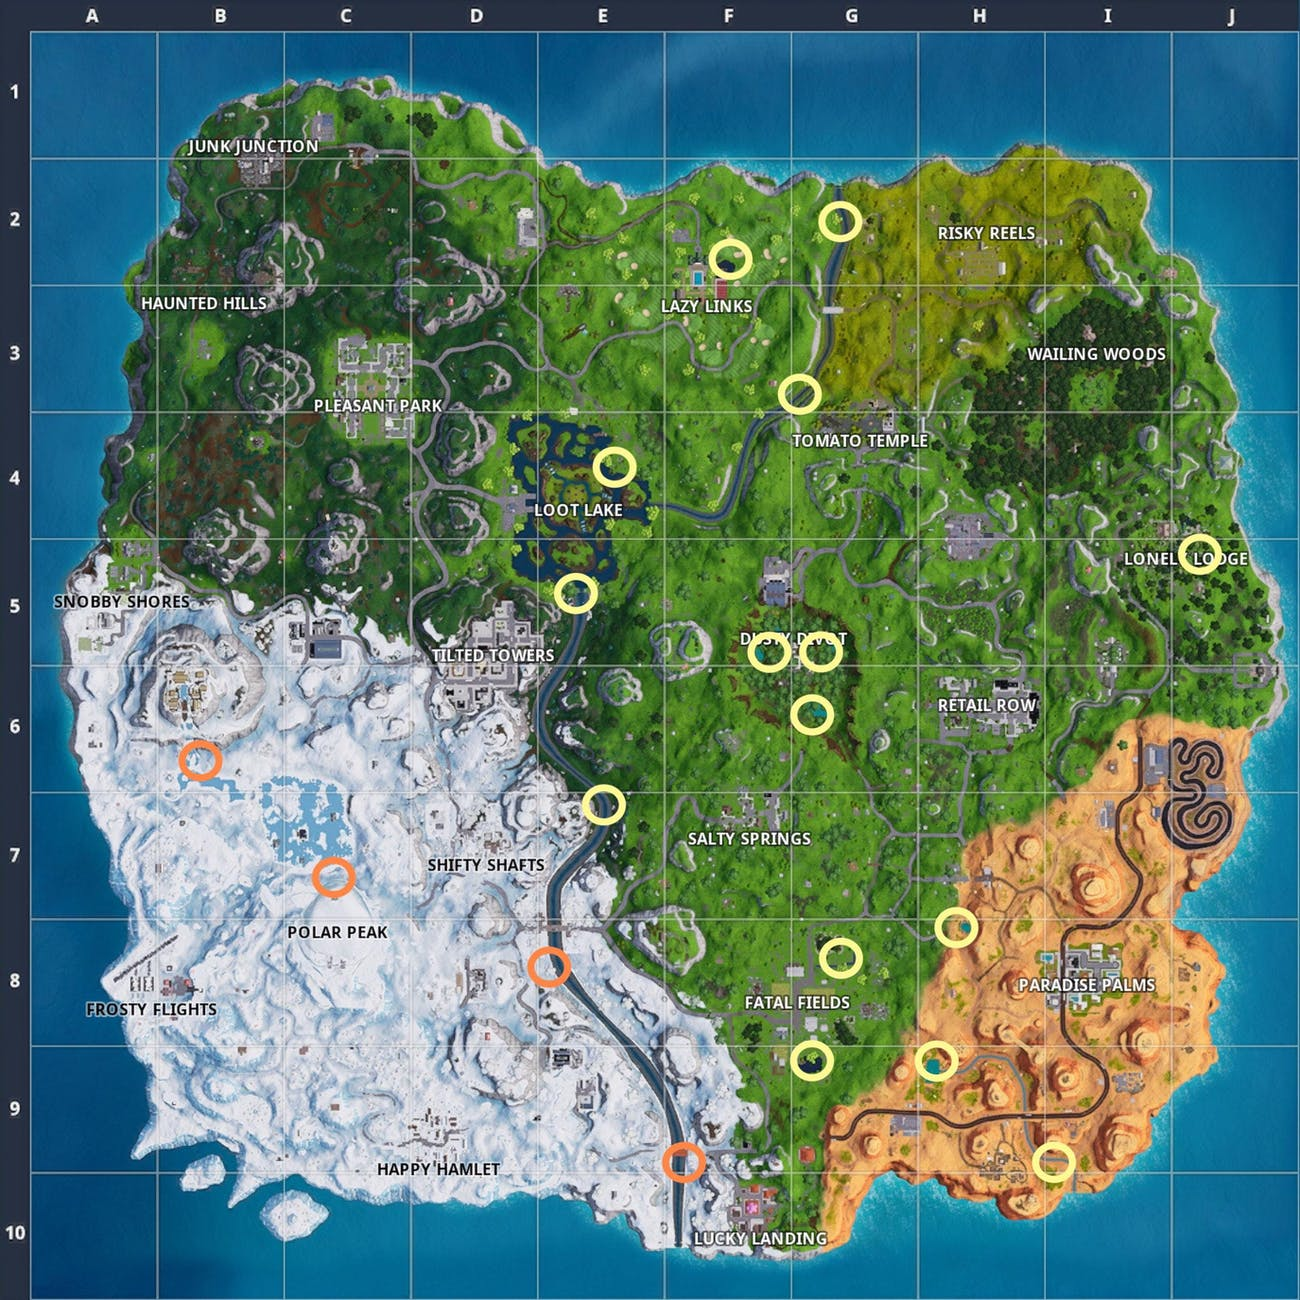 fortnite waterside goose nest map - how to get to spawn island in fortnite creative 2019